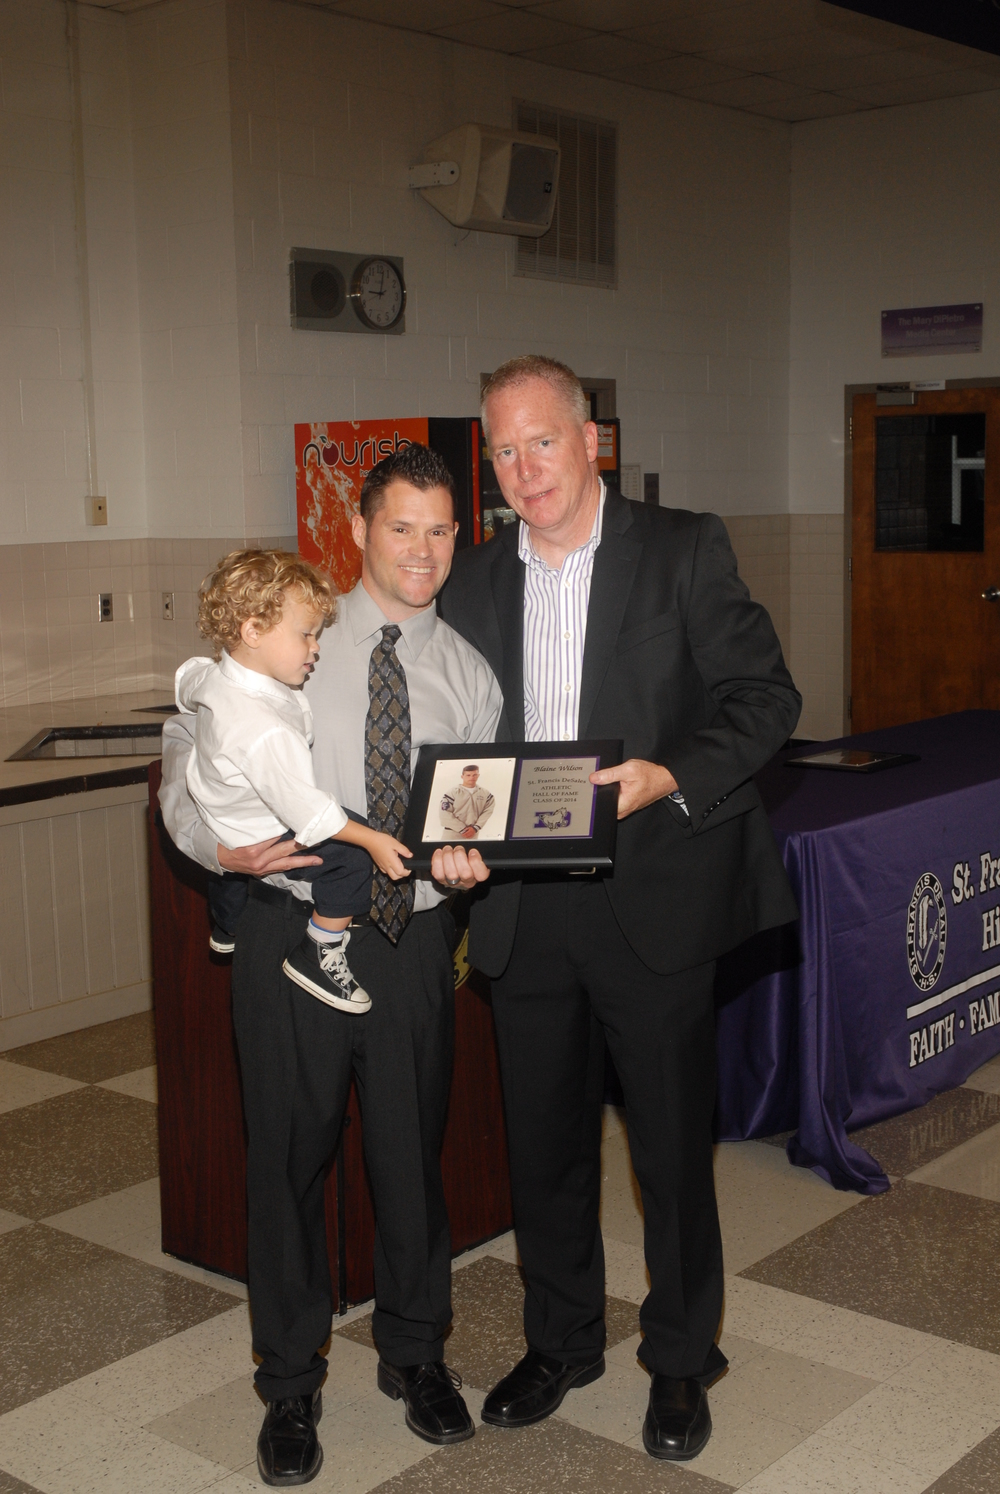 Blaine Wilson, his son and principal Dan Garrick